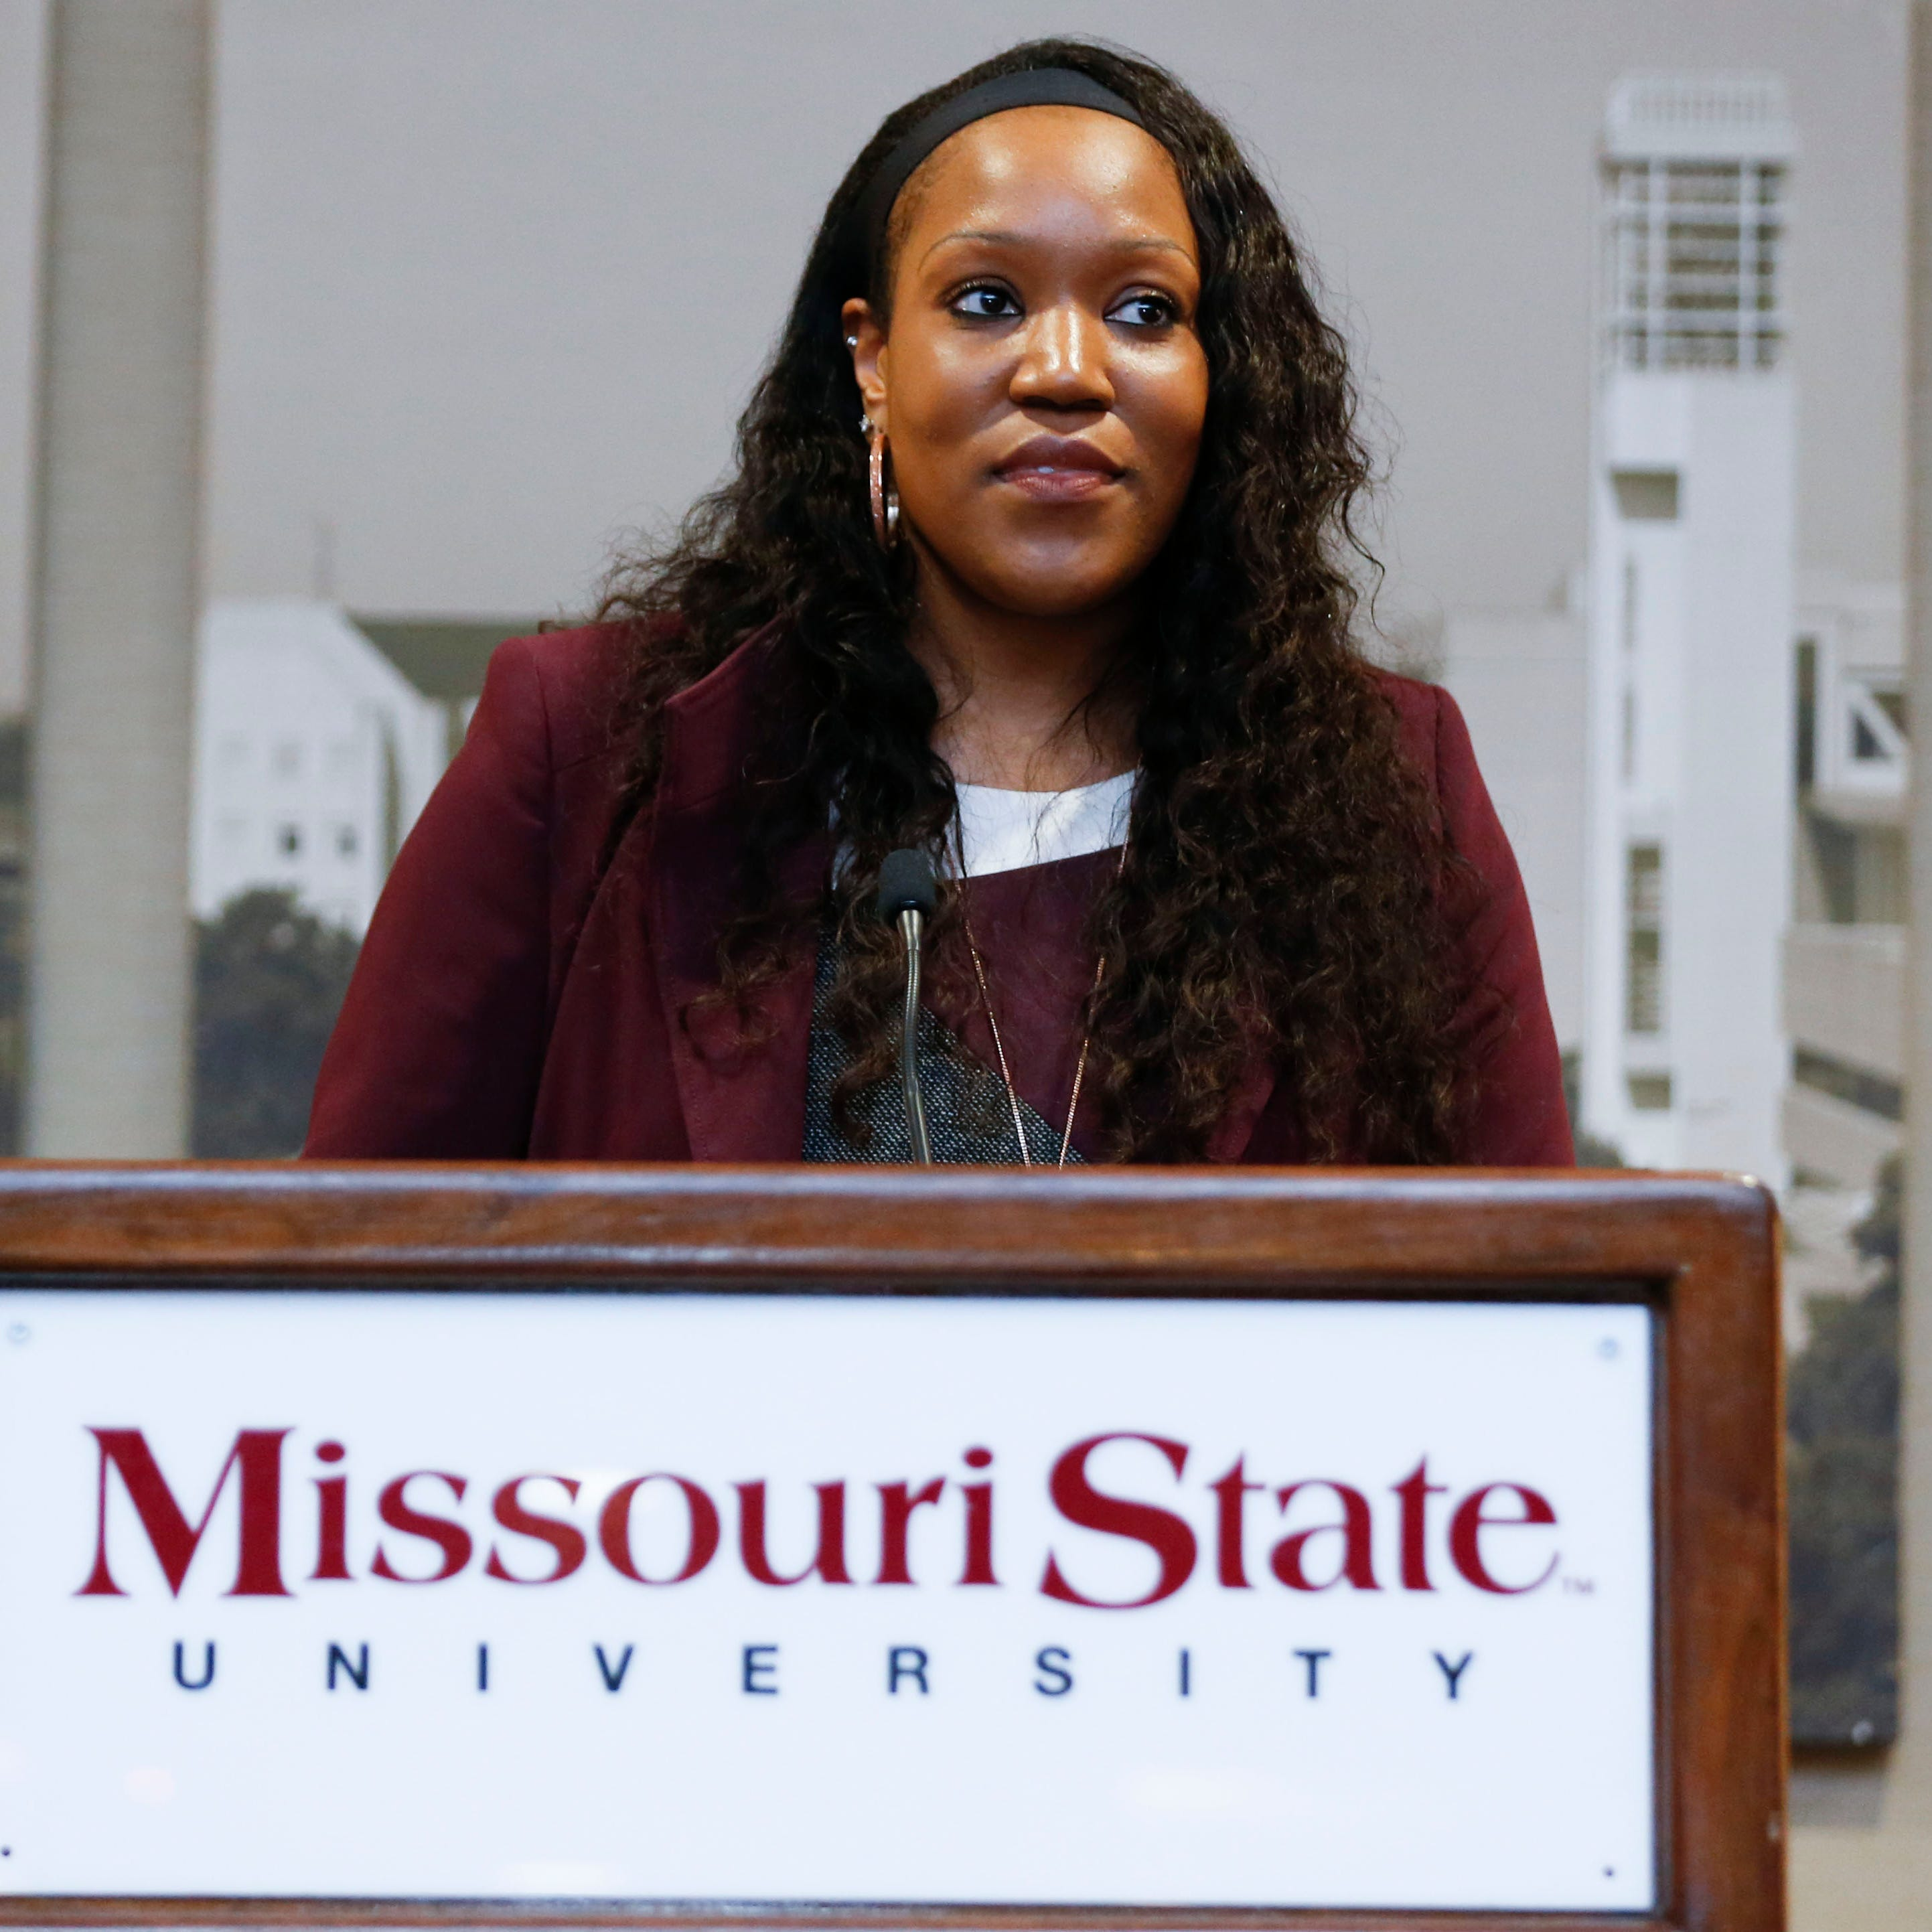 New MSU Lady Bears head coach Amaka Agugua-Hamilton's contract details revealed